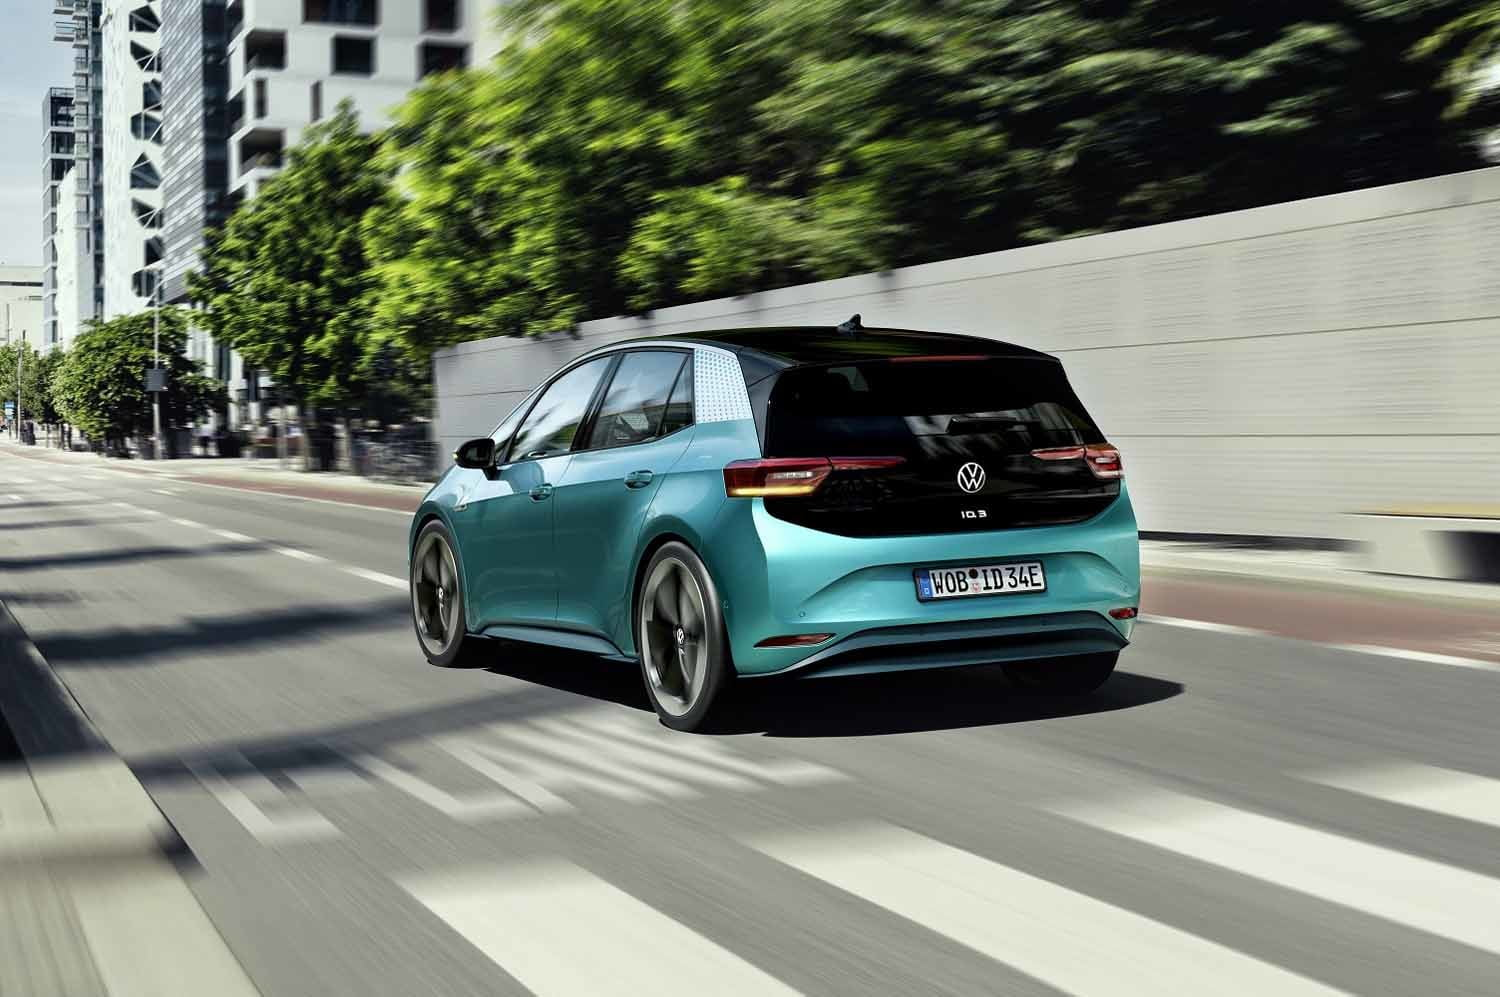 2020 volkswagen id 3 electric car orders open first edition detailed vw official 2